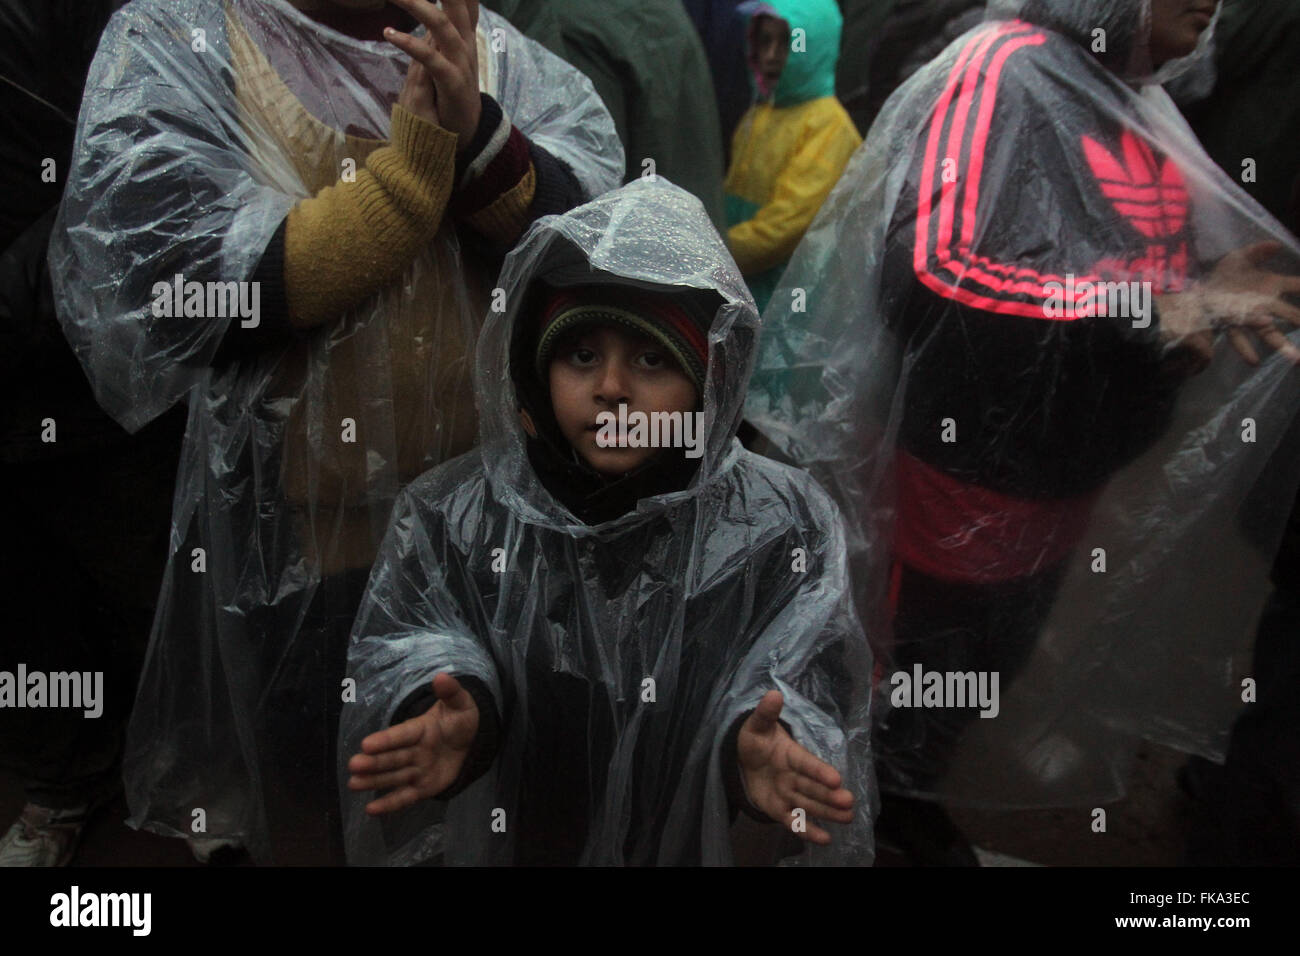 Athens, Greece. 7th Mar, 2016. Refugees and migrants stand in the rain at the Greece-FYROM buffer zone, awaiting - Stock Image